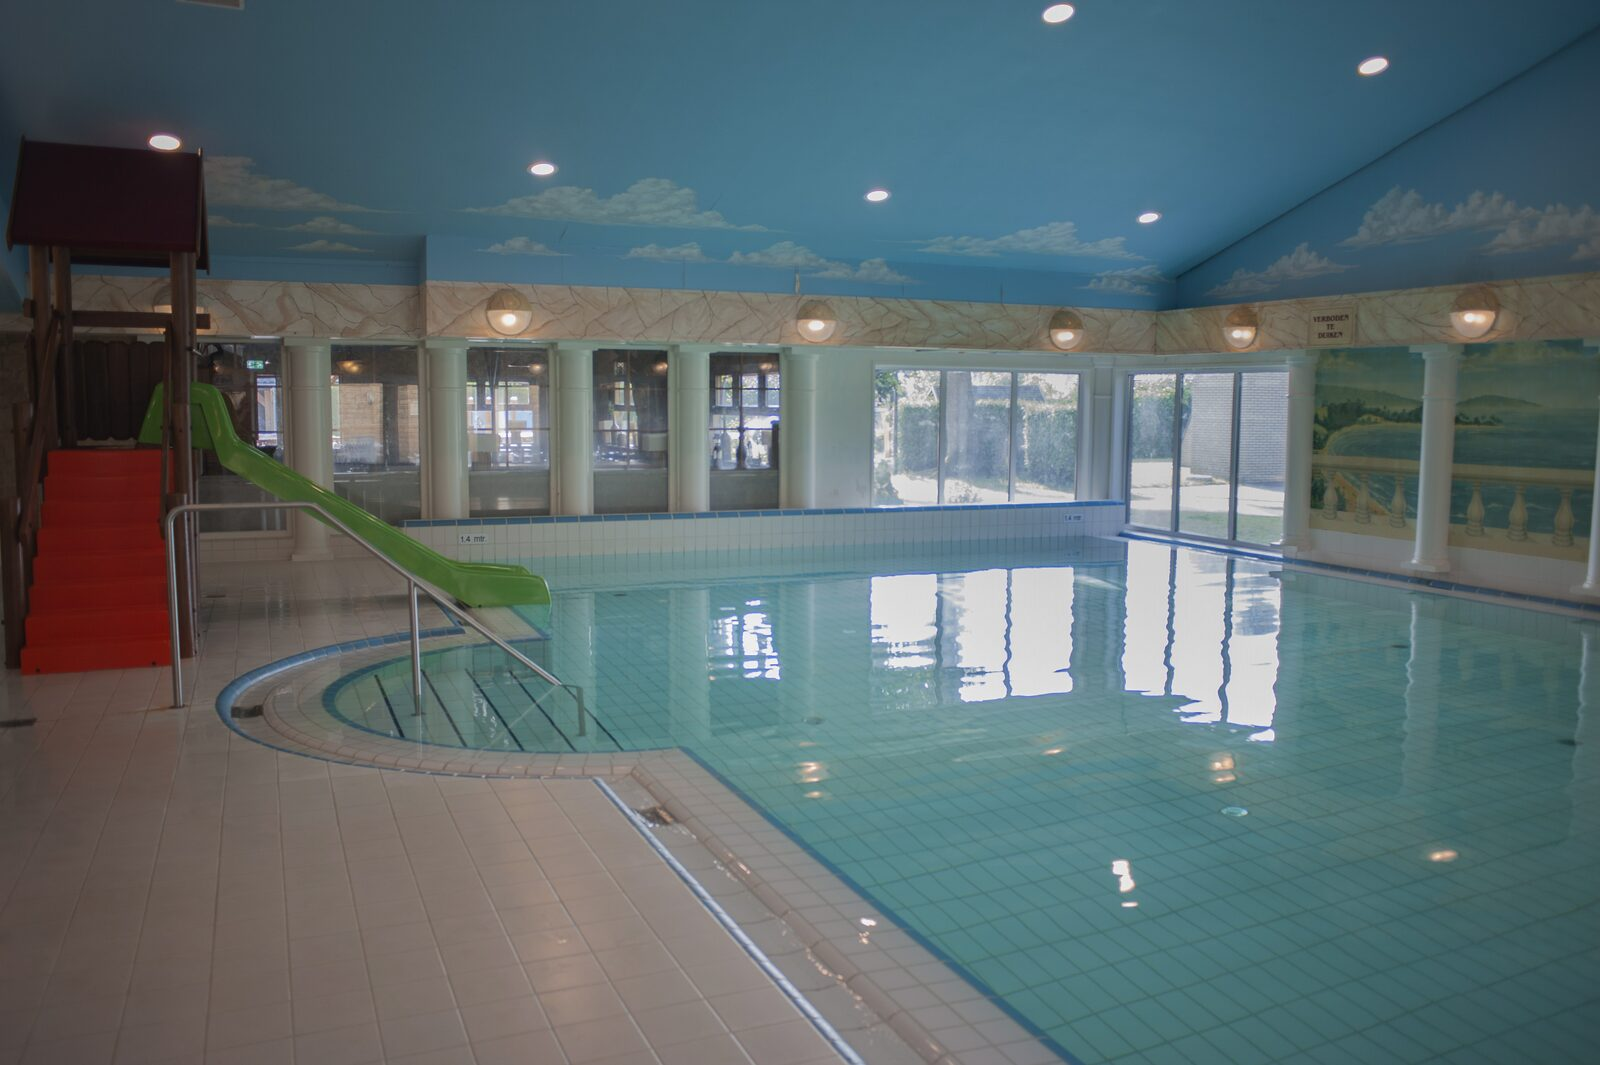 Indoor pool at De Boshoek